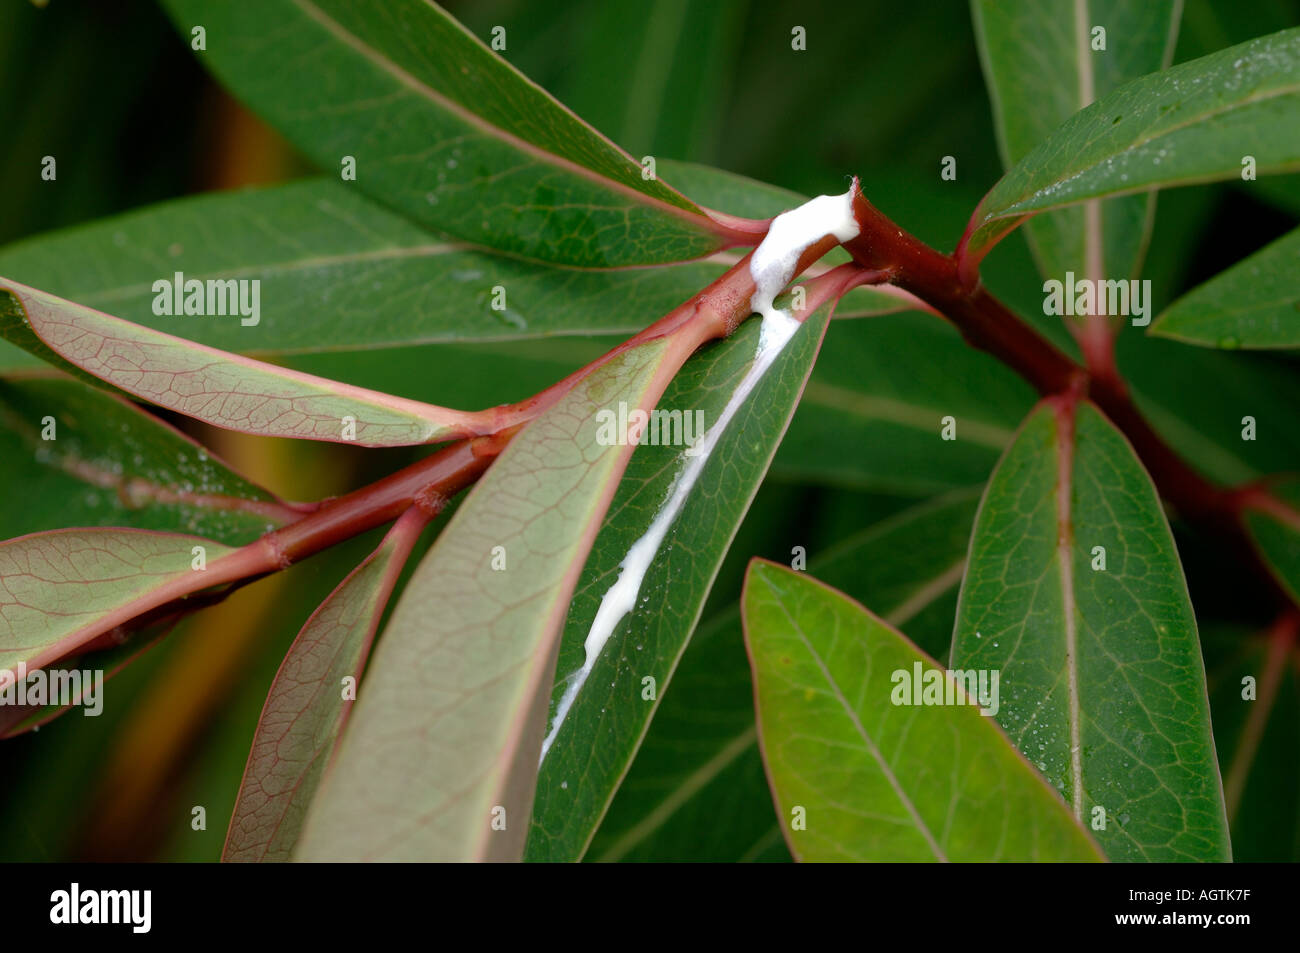 Exuding sap exuding from the cut stem of euphorbia griffithii stock photo